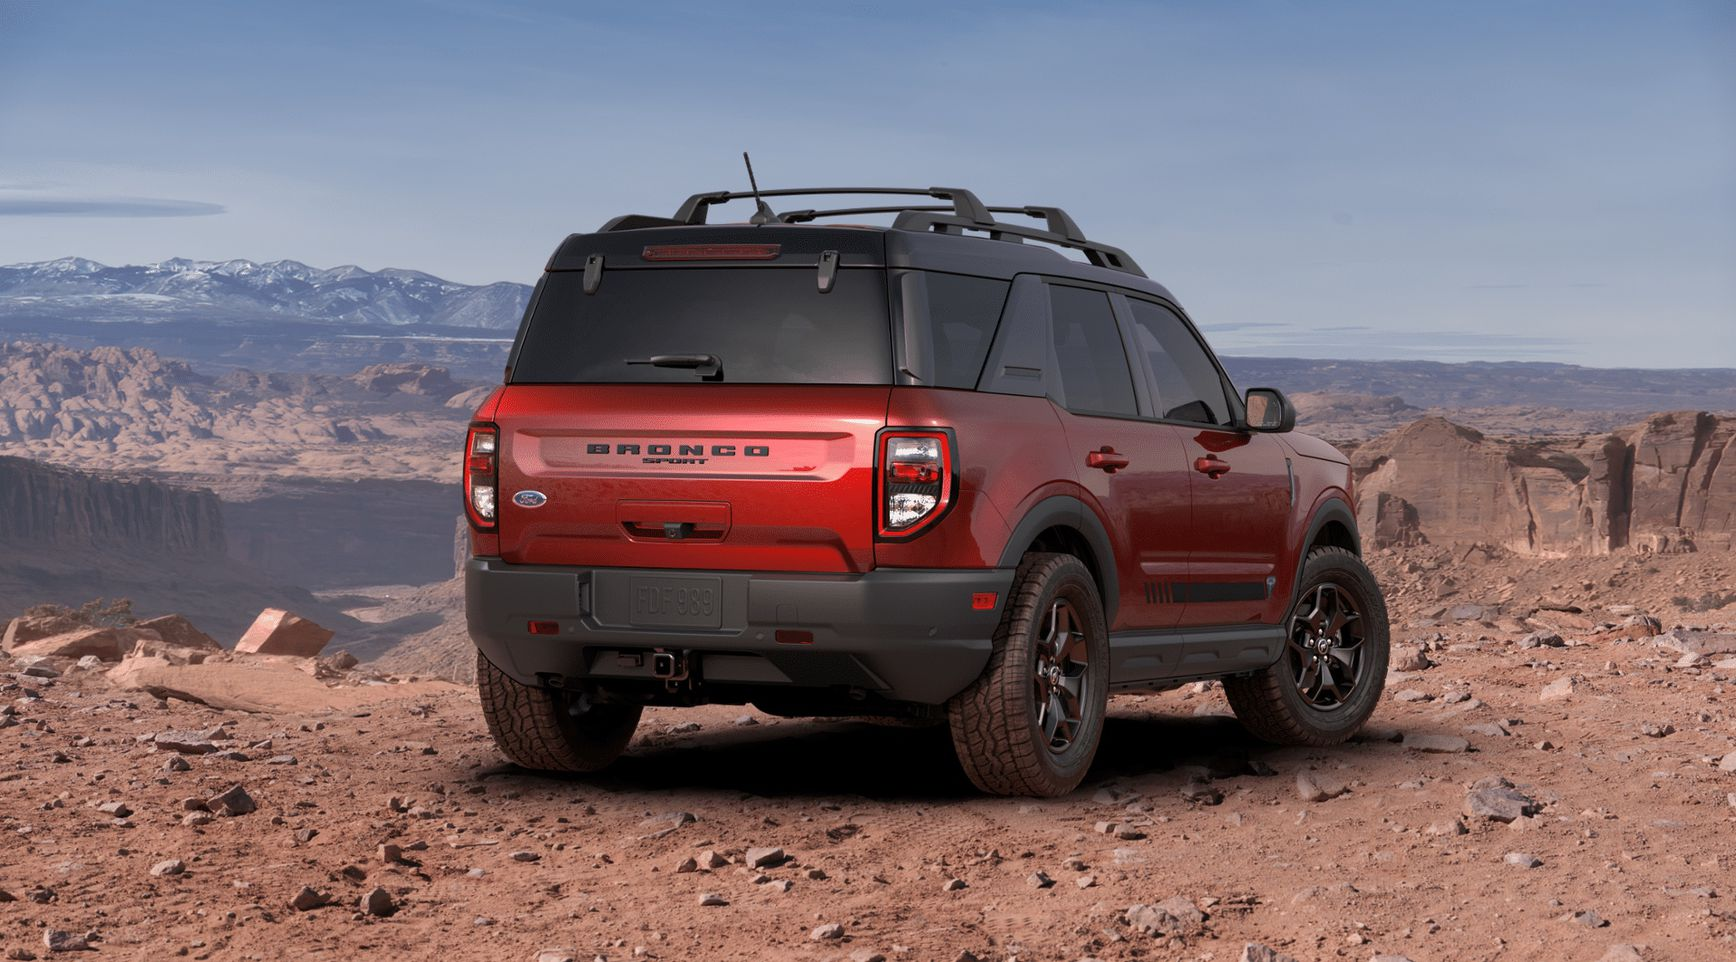 Ford Bronco Sport 2021 First Edition 2.0 L4 EcoBoost® Turbocharged Бензин 8 ст. АКПП Полный